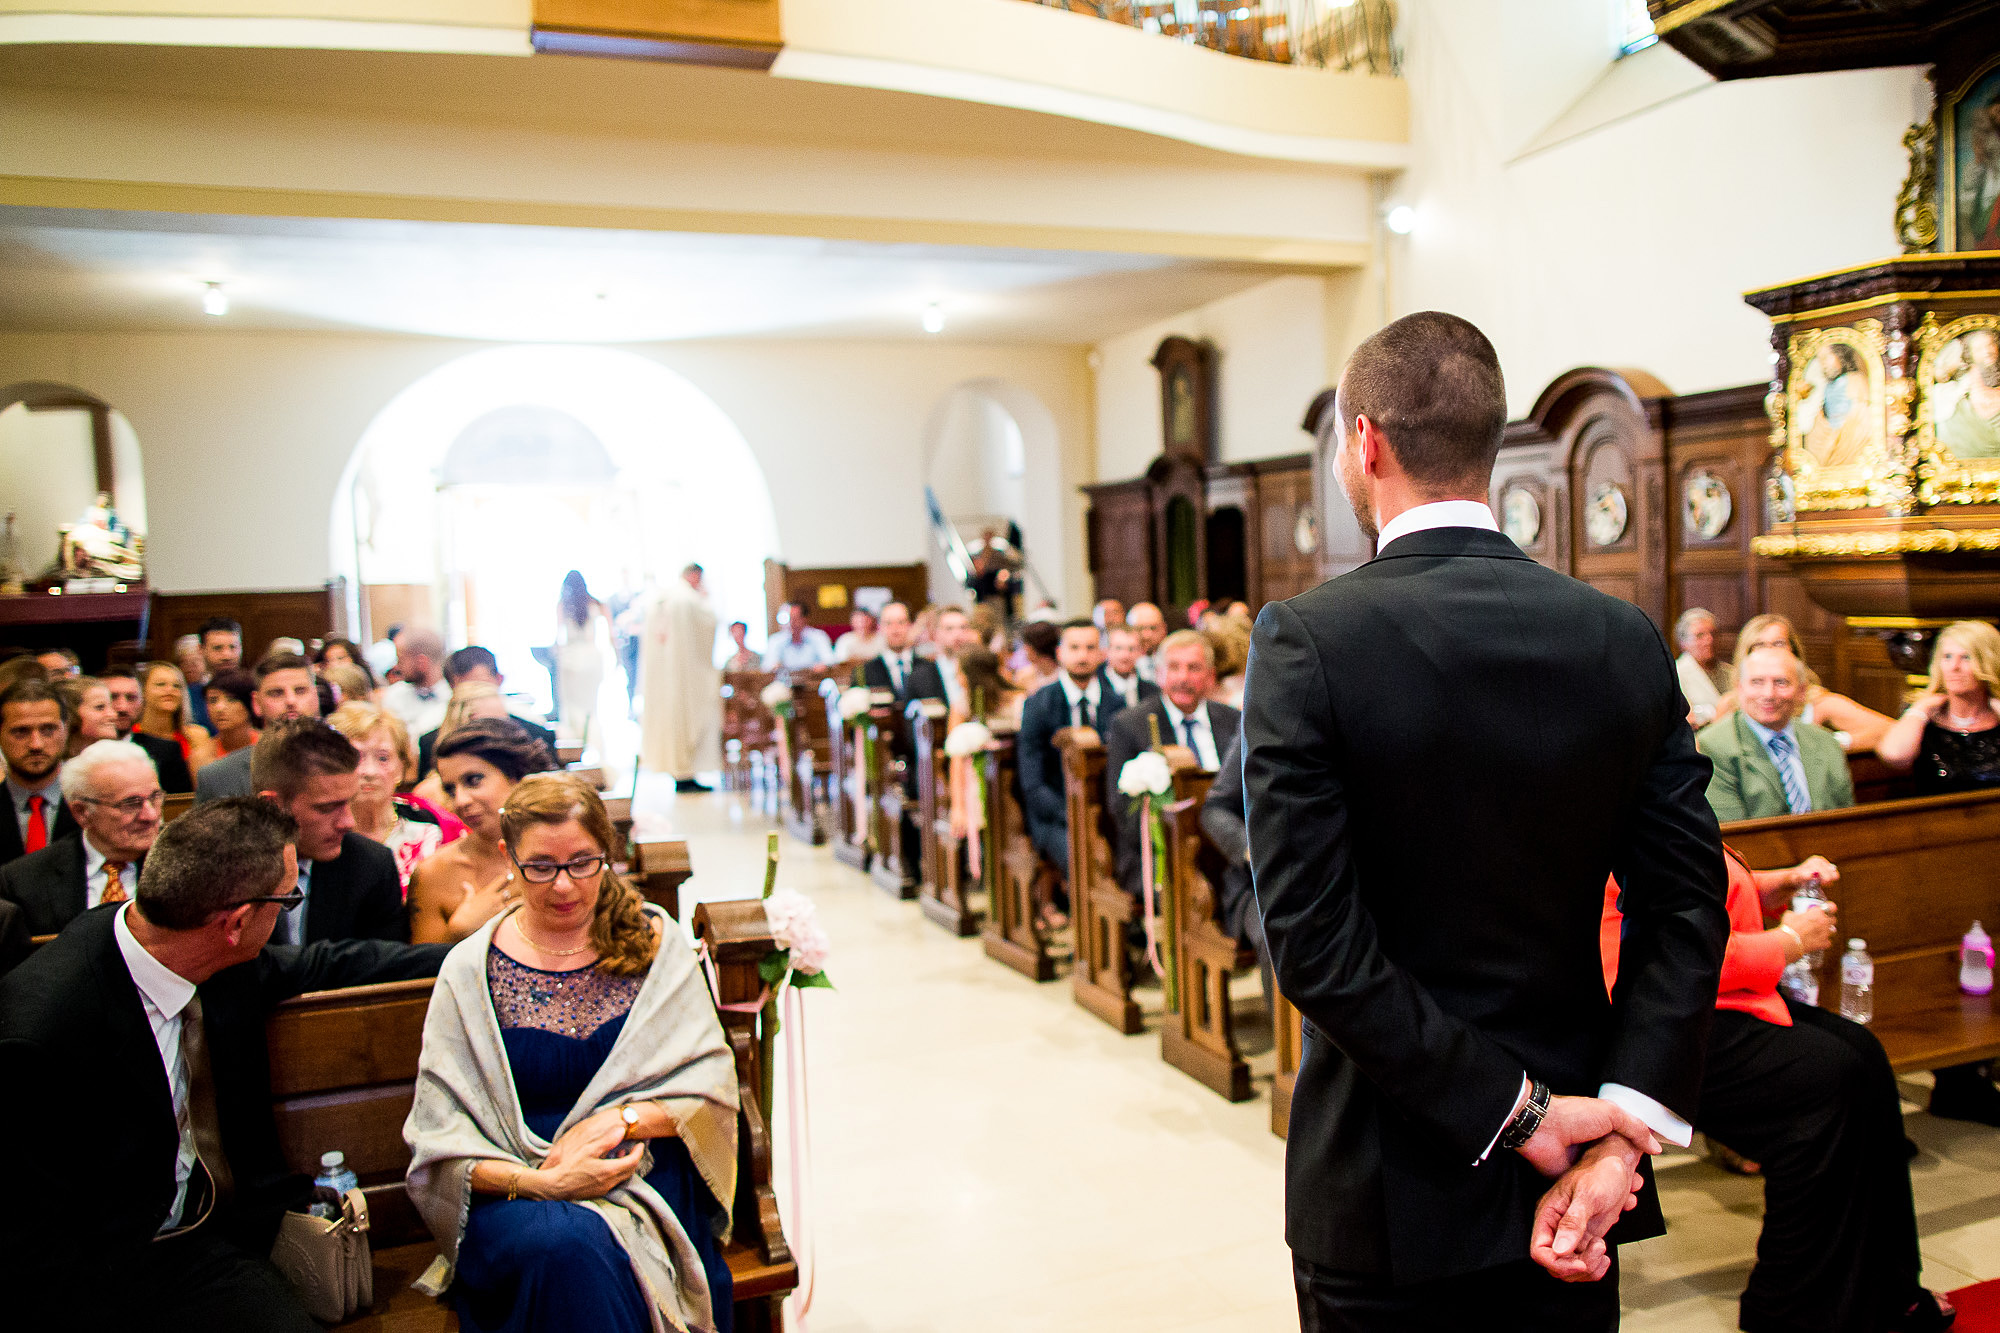 Luxemburg, down the aisle, church, wedding, bride, excitement, weddingdress, gespannt, freude, aufregung